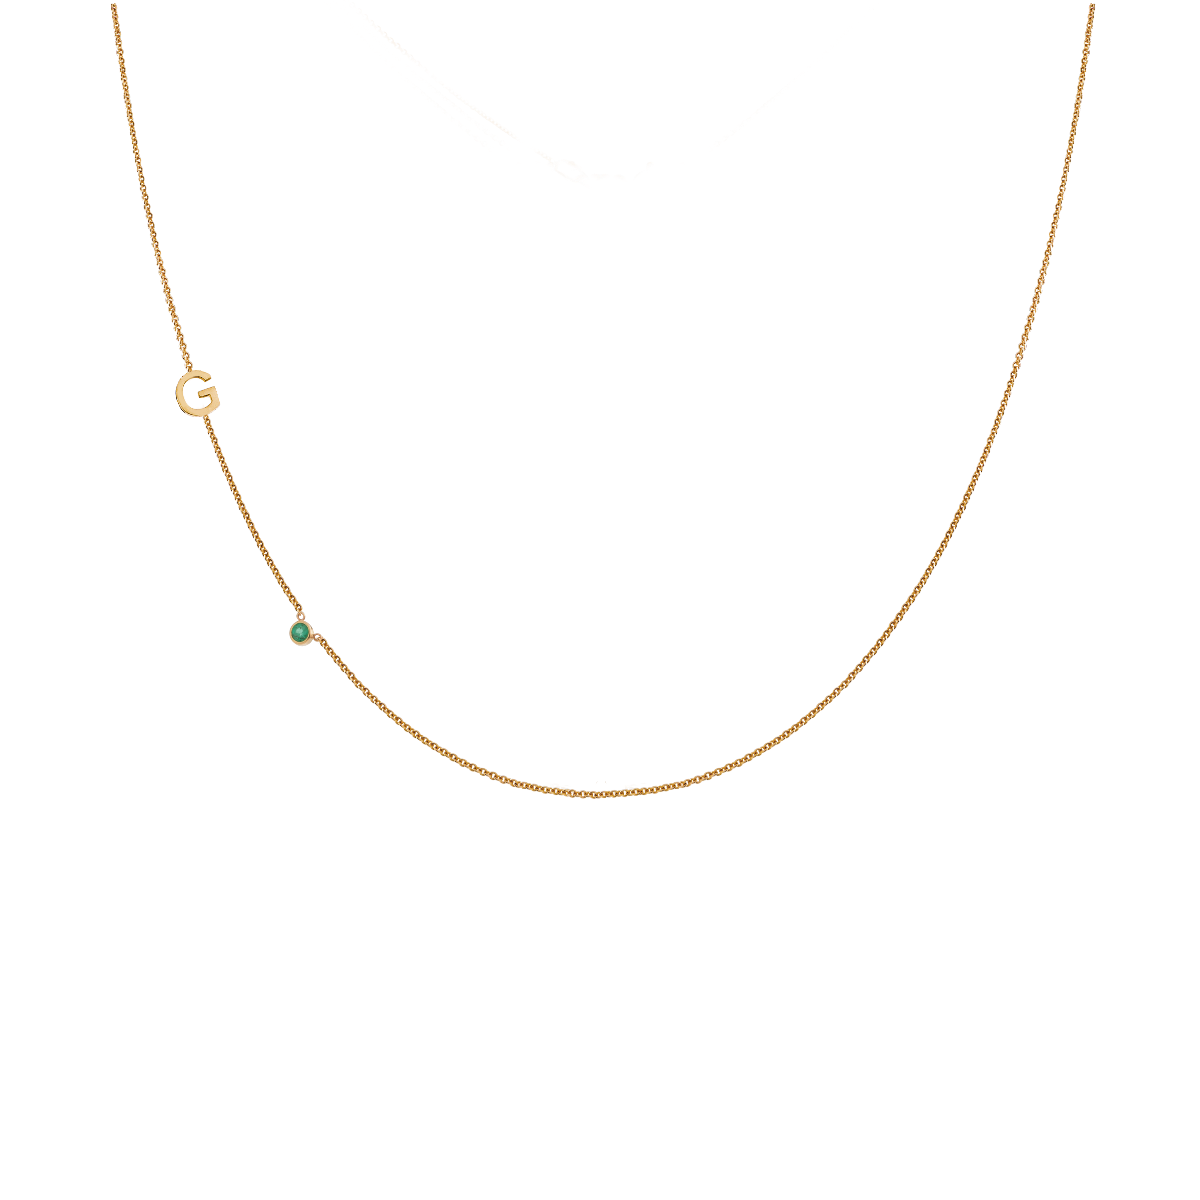 Letter + Birthstone Necklace